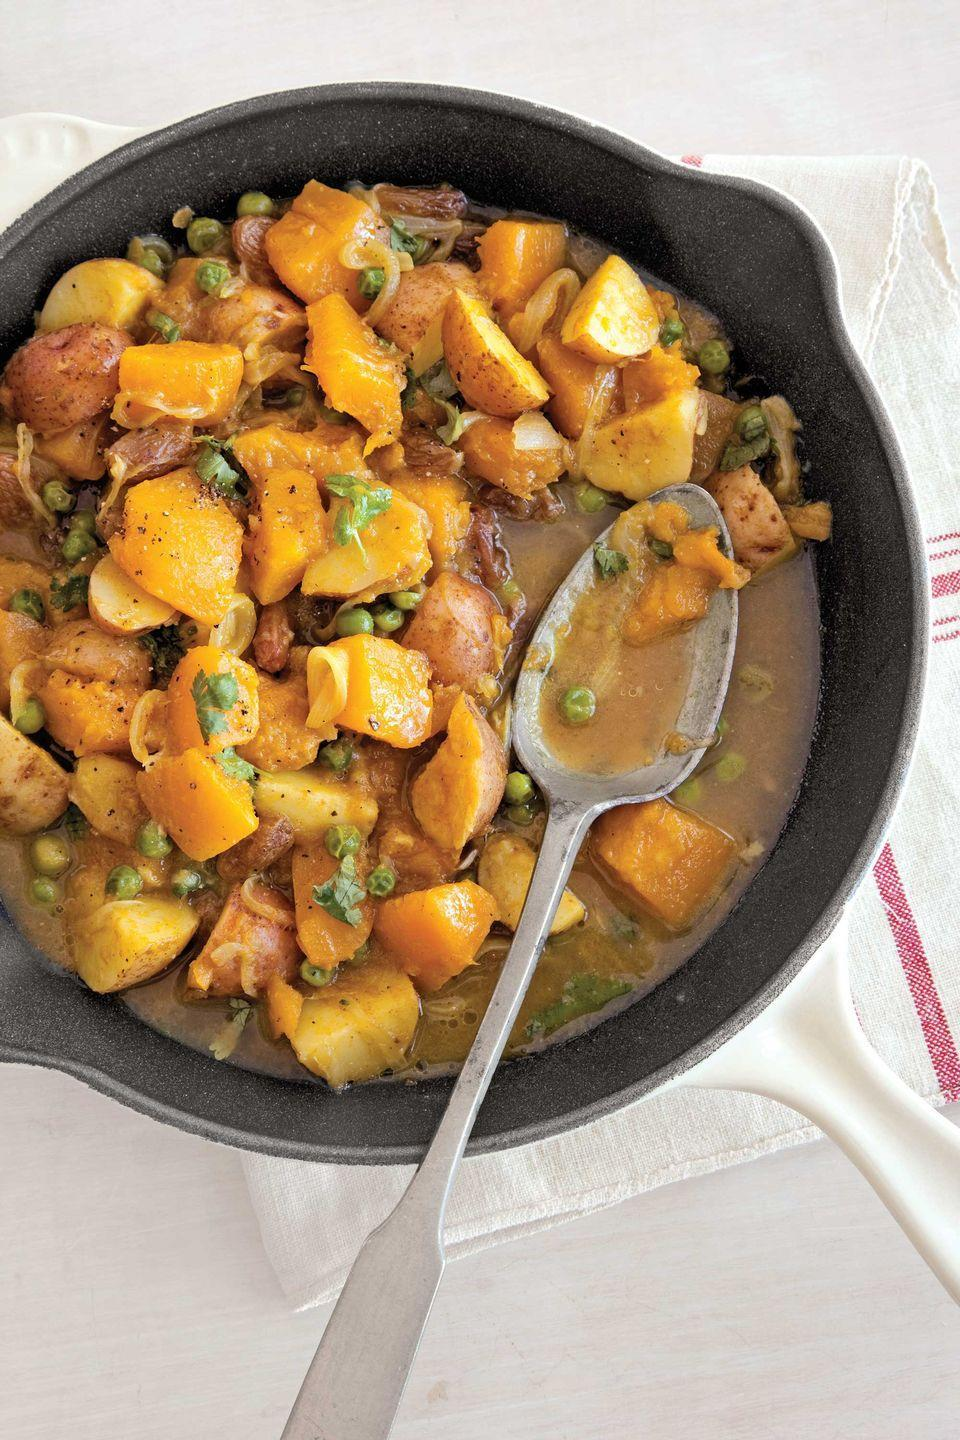 "<p>This spicy side dish featuring tender pumpkin and tomatoes with a touch of curry powder is sure to be a hit. </p><p><strong><a href=""https://www.countryliving.com/food-drinks/recipes/a2994/curried-pumpkin-peas-recipe/"" rel=""nofollow noopener"" target=""_blank"" data-ylk=""slk:Get the recipe"" class=""link rapid-noclick-resp"">Get the recipe</a>.</strong></p>"